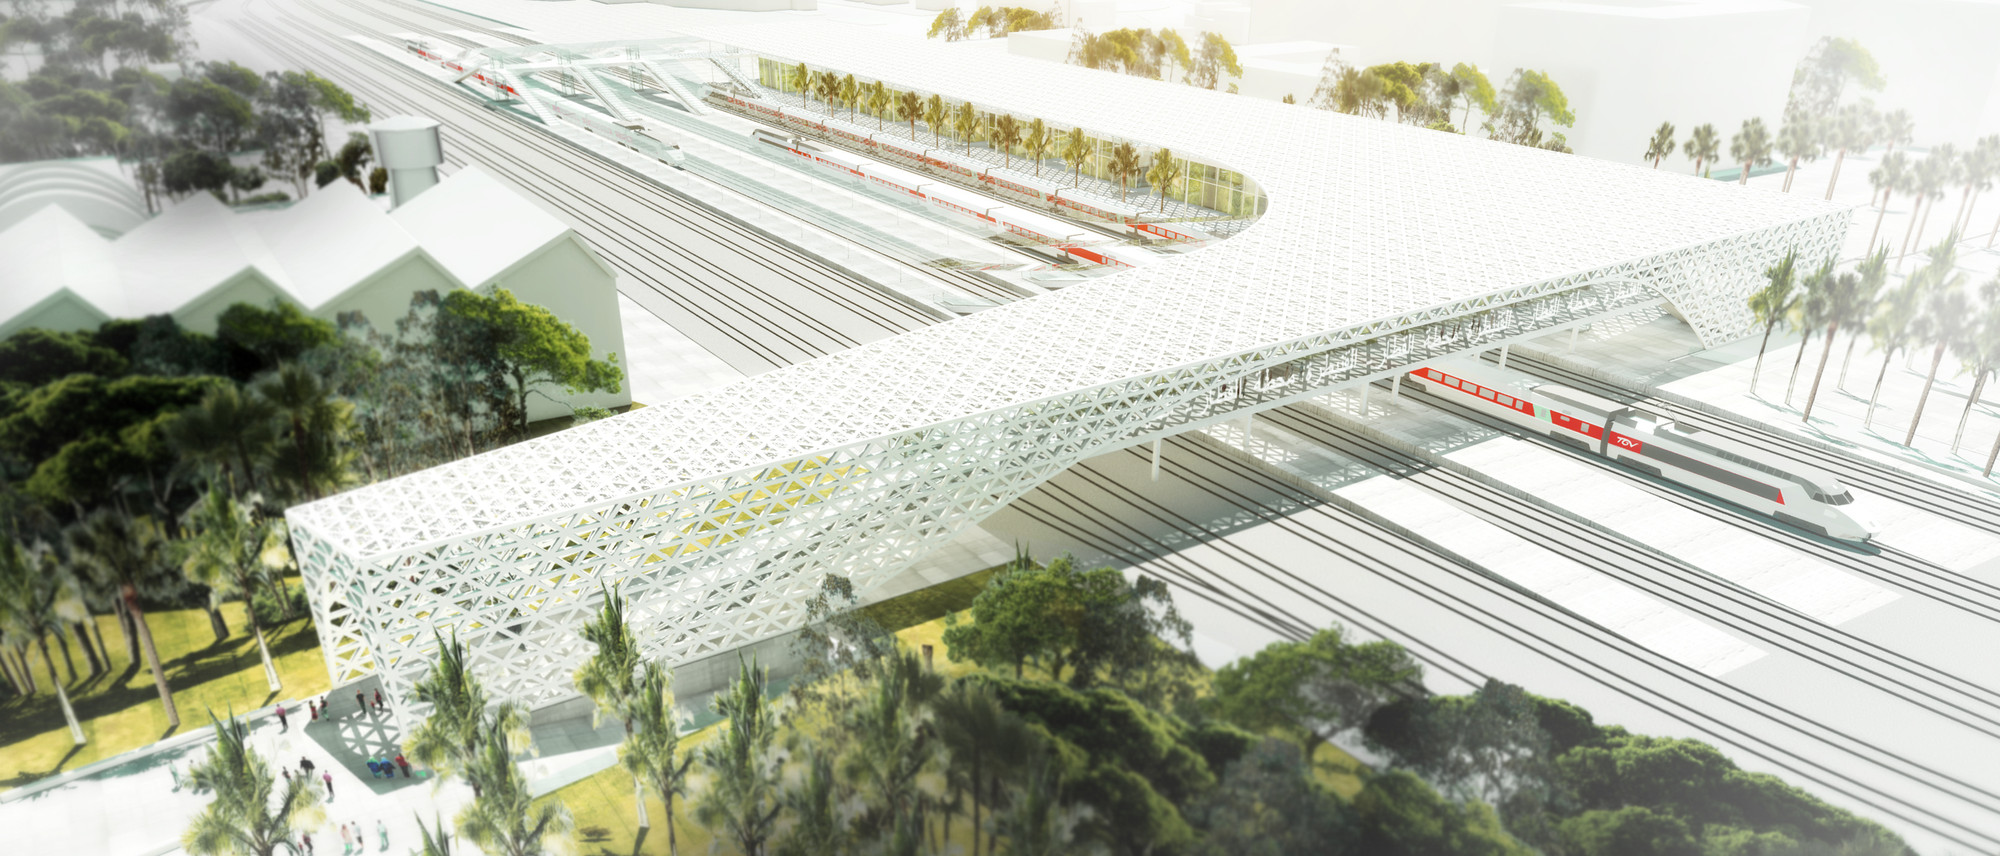 Silvio d'Ascia Wins Competition to Design Morocco Rail Station, Courtesy of Silvio d'Ascia Architecture and Omar Kobité